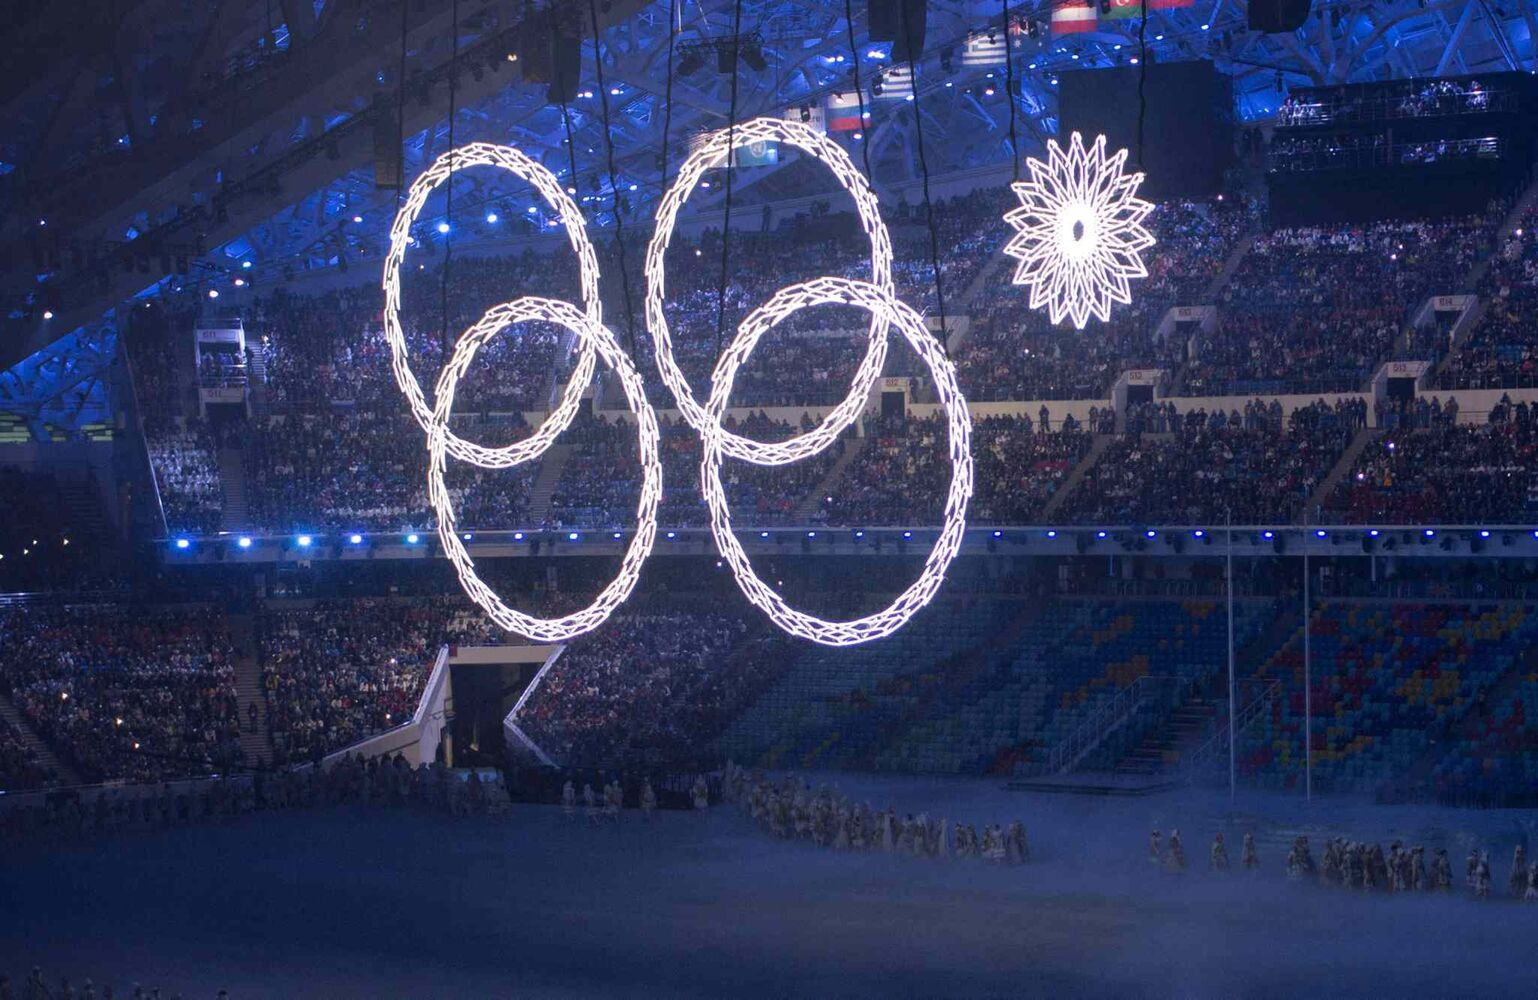 An Olympic rings fails to open during opening ceremonies at the Sochi Winter Olympics Friday, February 7, 2014 in Sochi. THE CANADIAN PRESS/Paul Chiasson